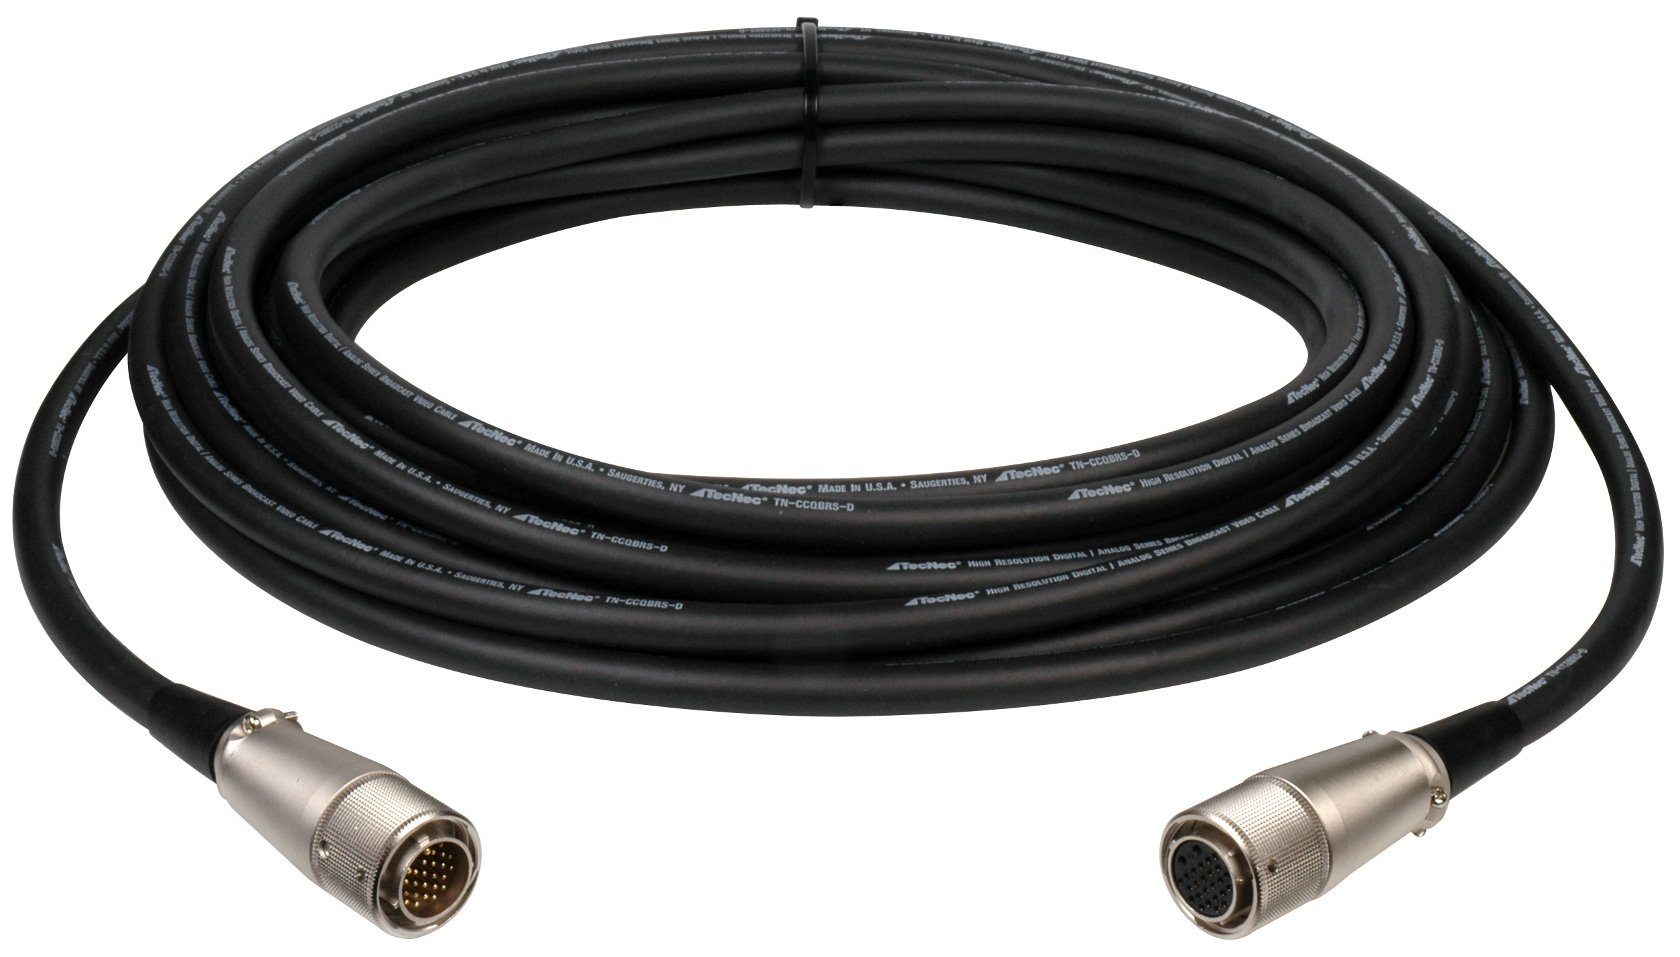 33 ft EIAJ 26-Pin Male to Female Sony Camera Control Cable